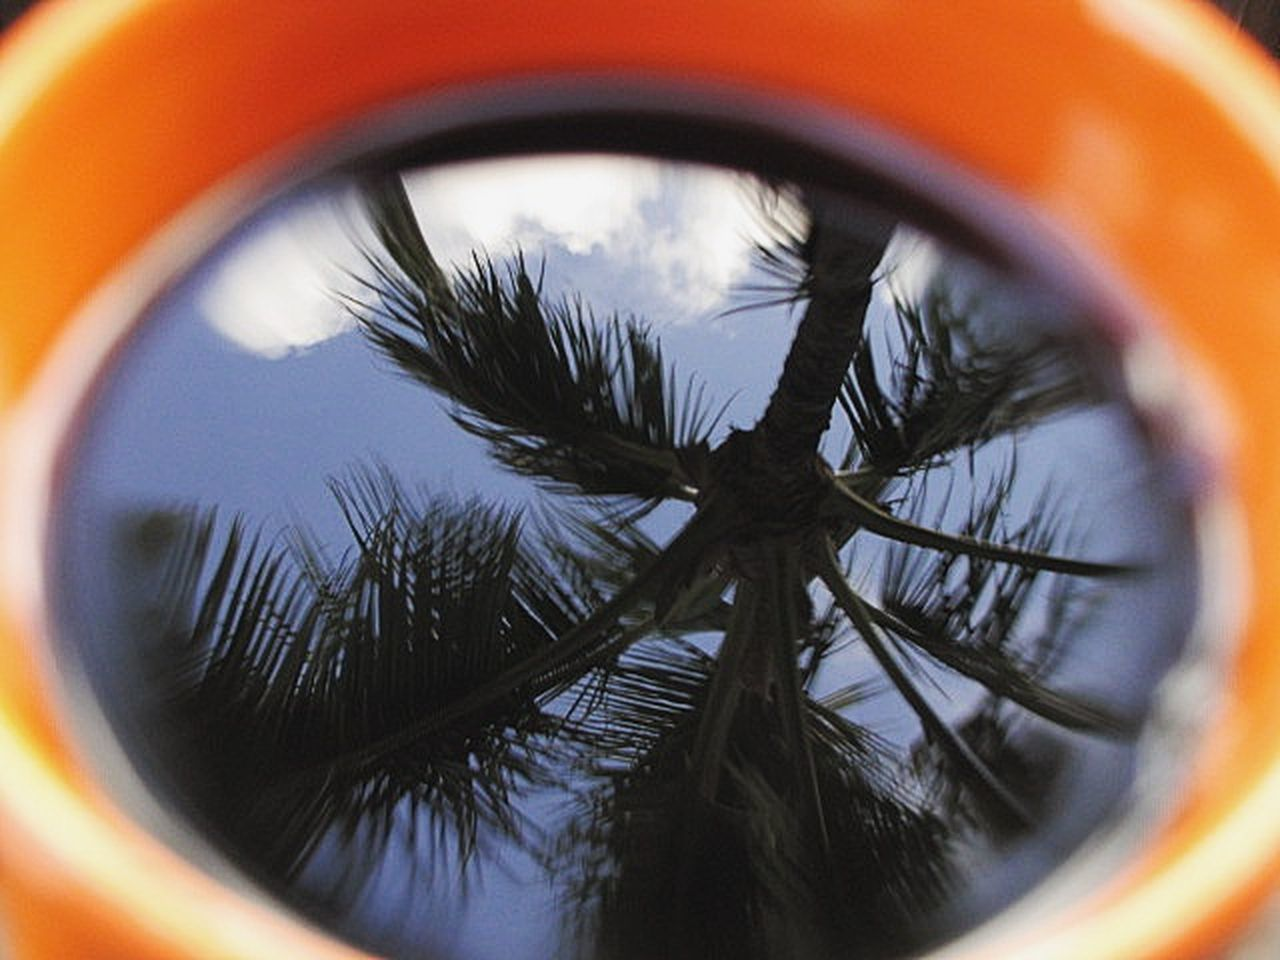 Throwback to the time when every cup of coffee came with a bit a paradise. Reflection Tree Coffee EyeEm Close-up Bokeh EyeEm Best Shots Getting Inspired Clouds Coconut Tree